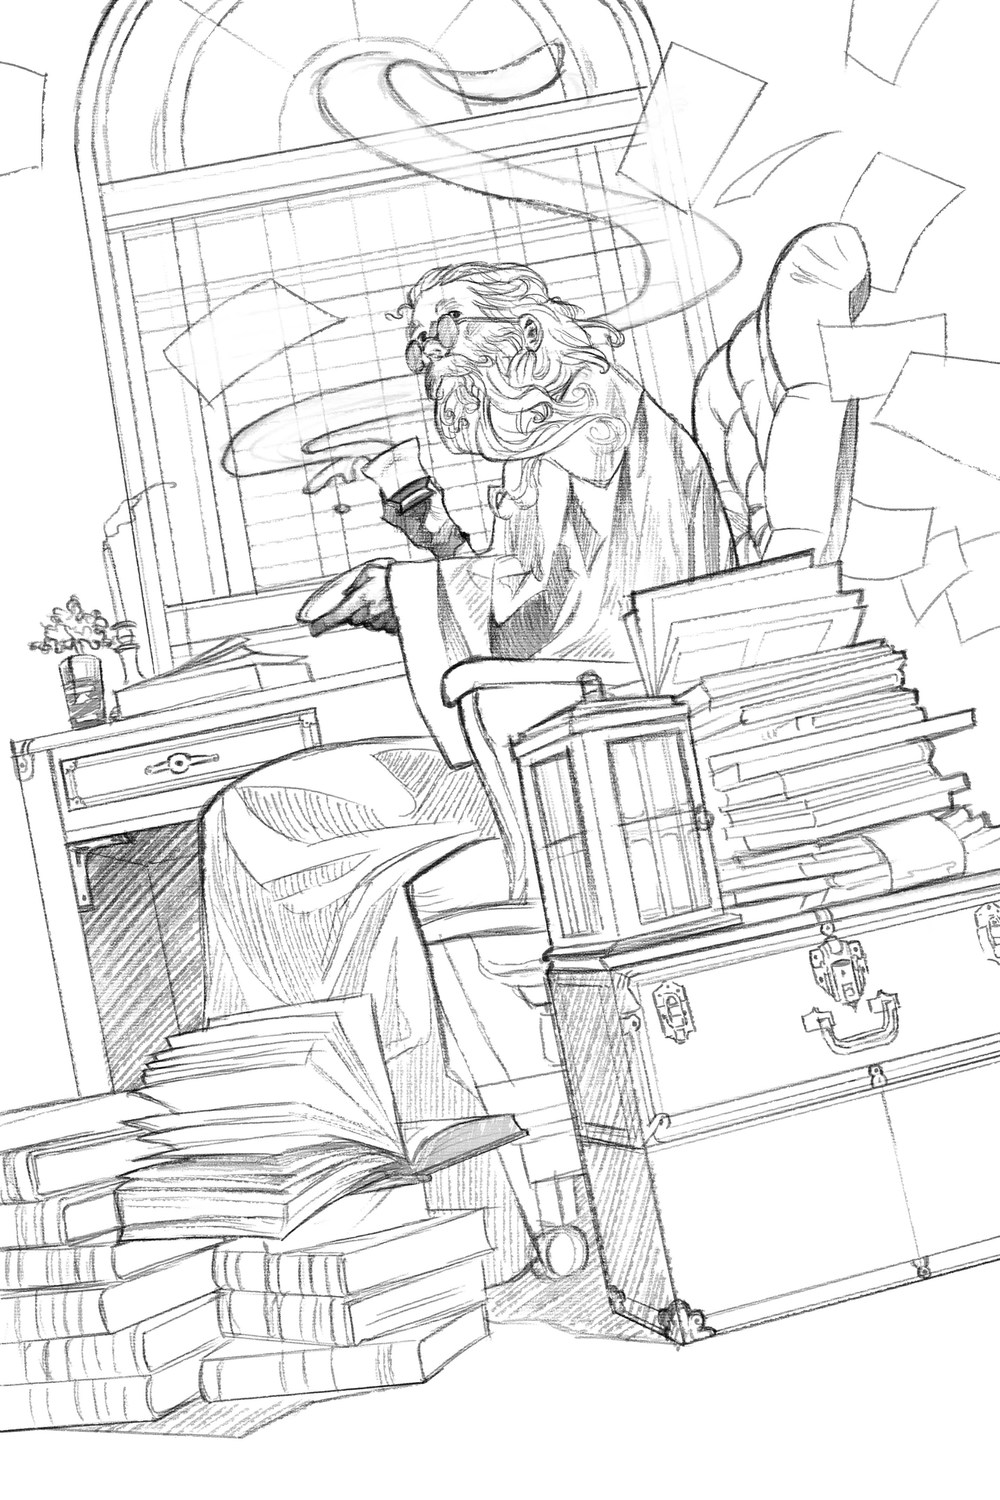 Sketchin' the sketch with some hilarious references. With my face to the floor, I snapped photos of my sister sitting at her desk in front of a window for the right light. I also got to use a new set of encyclopedias that I picked out specifically for occasions like this.